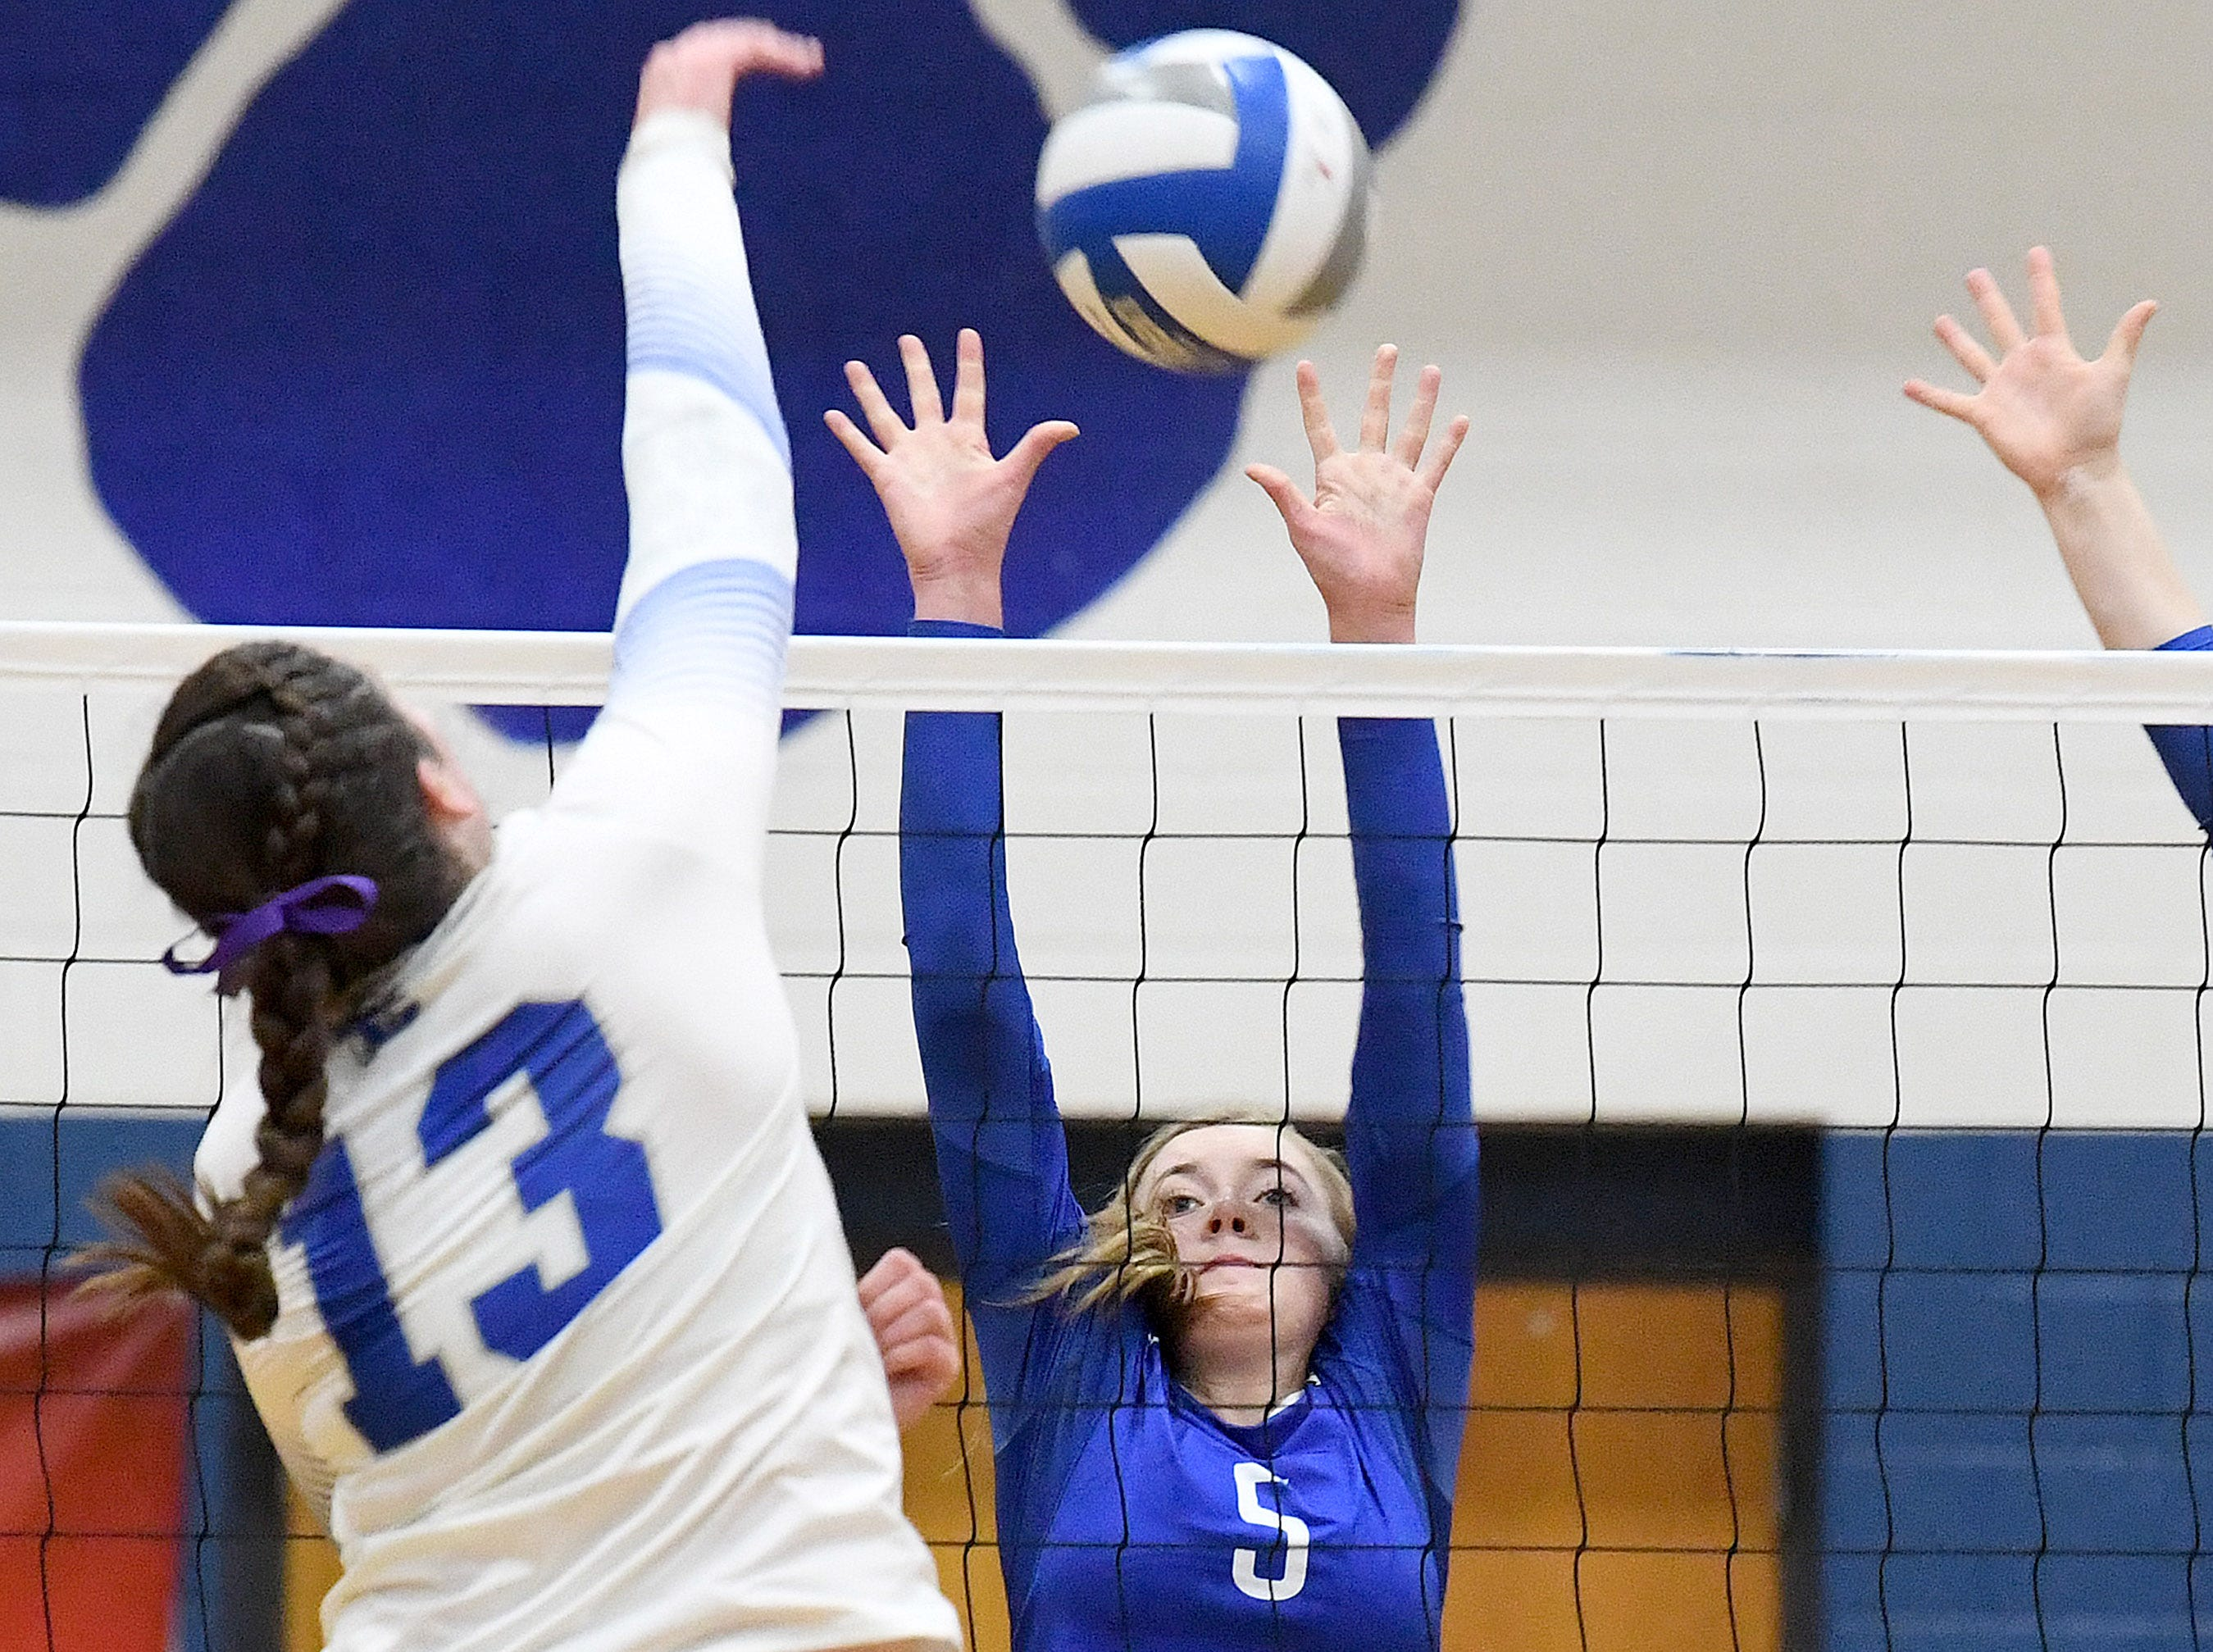 Fort Defiance's Madison Painter tries to block a return by Rockbridge County's Graceon Armstrong during a Region 3C semifinal match played in Lexington on Monday, Nov. 5, 2018.